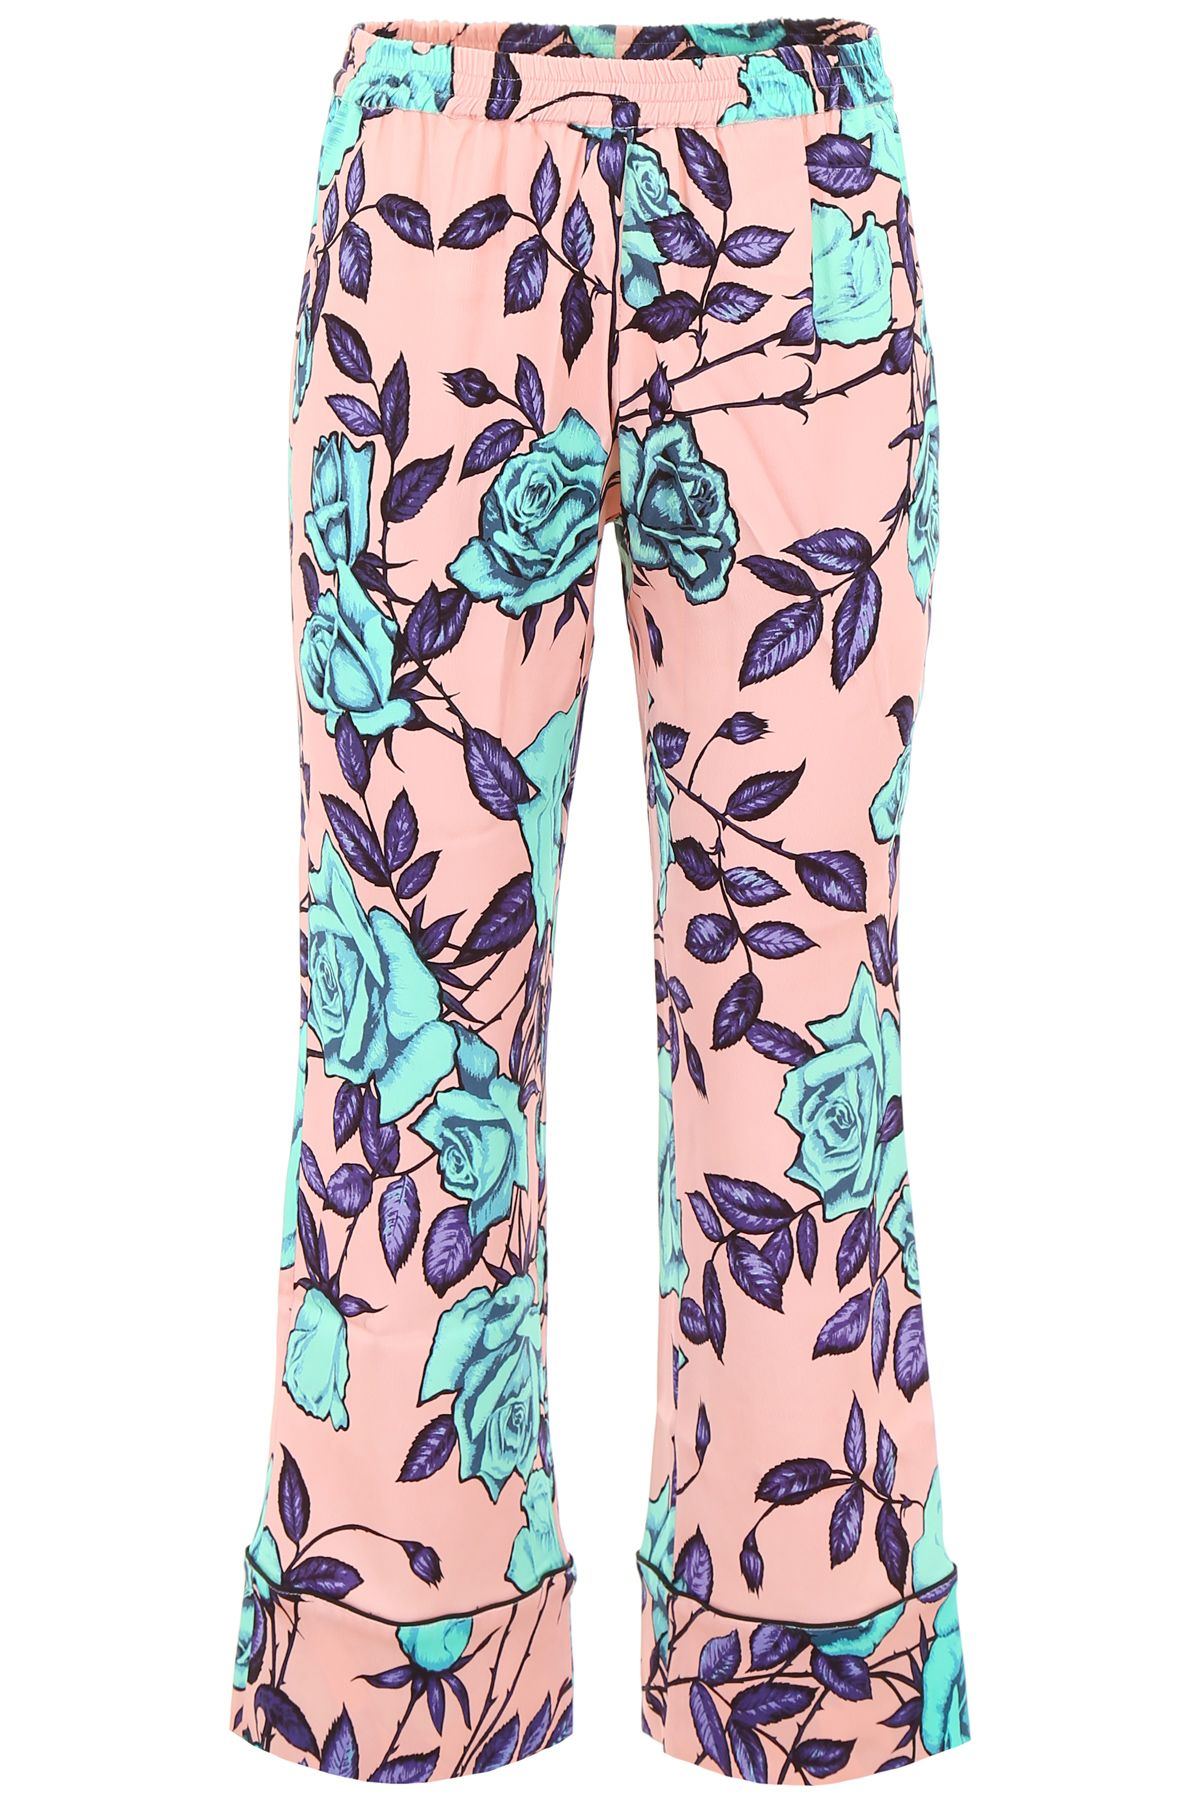 SCRAMBLED EGO Pyjama Trousers With Roses Print in Pink Violet